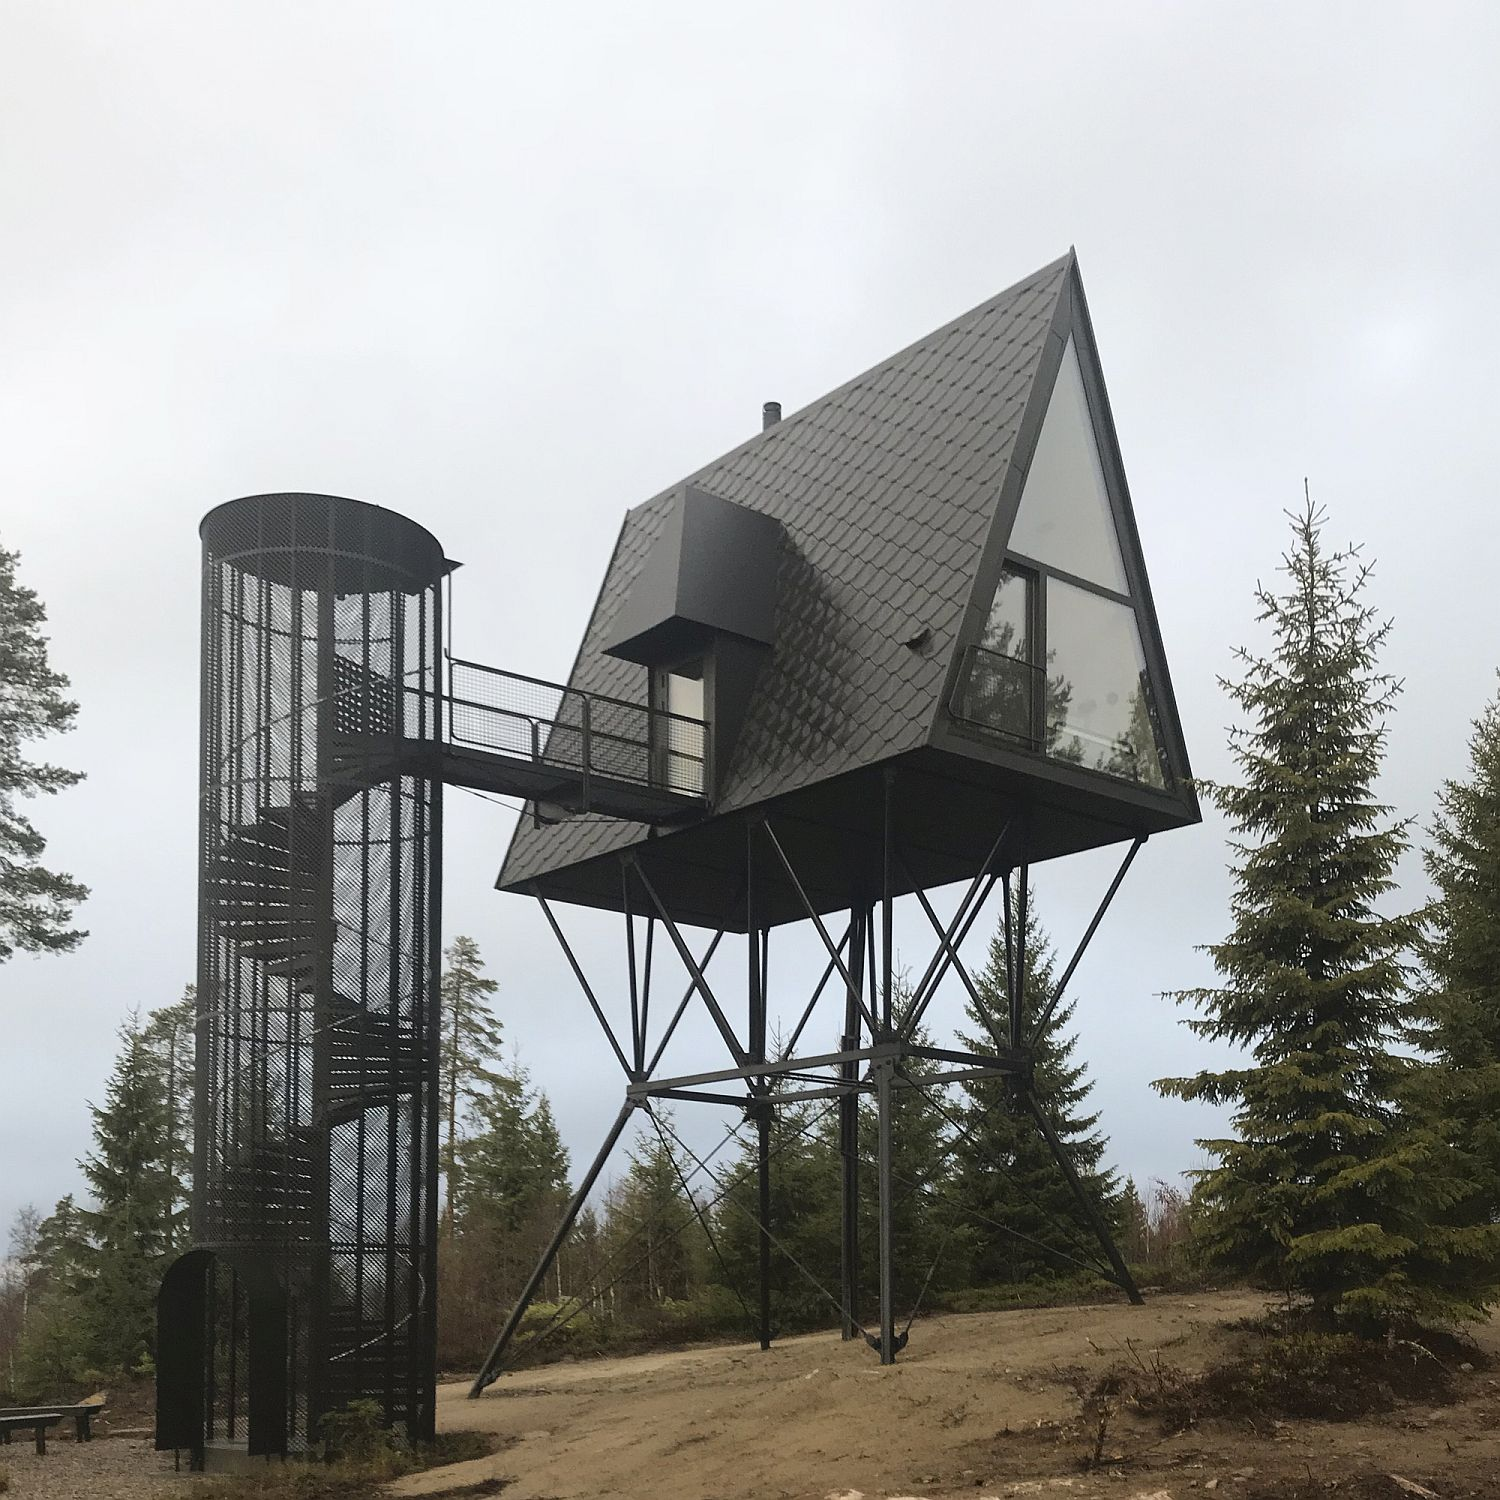 Classy And Reclusive Cabins On Stilts Take You Into A